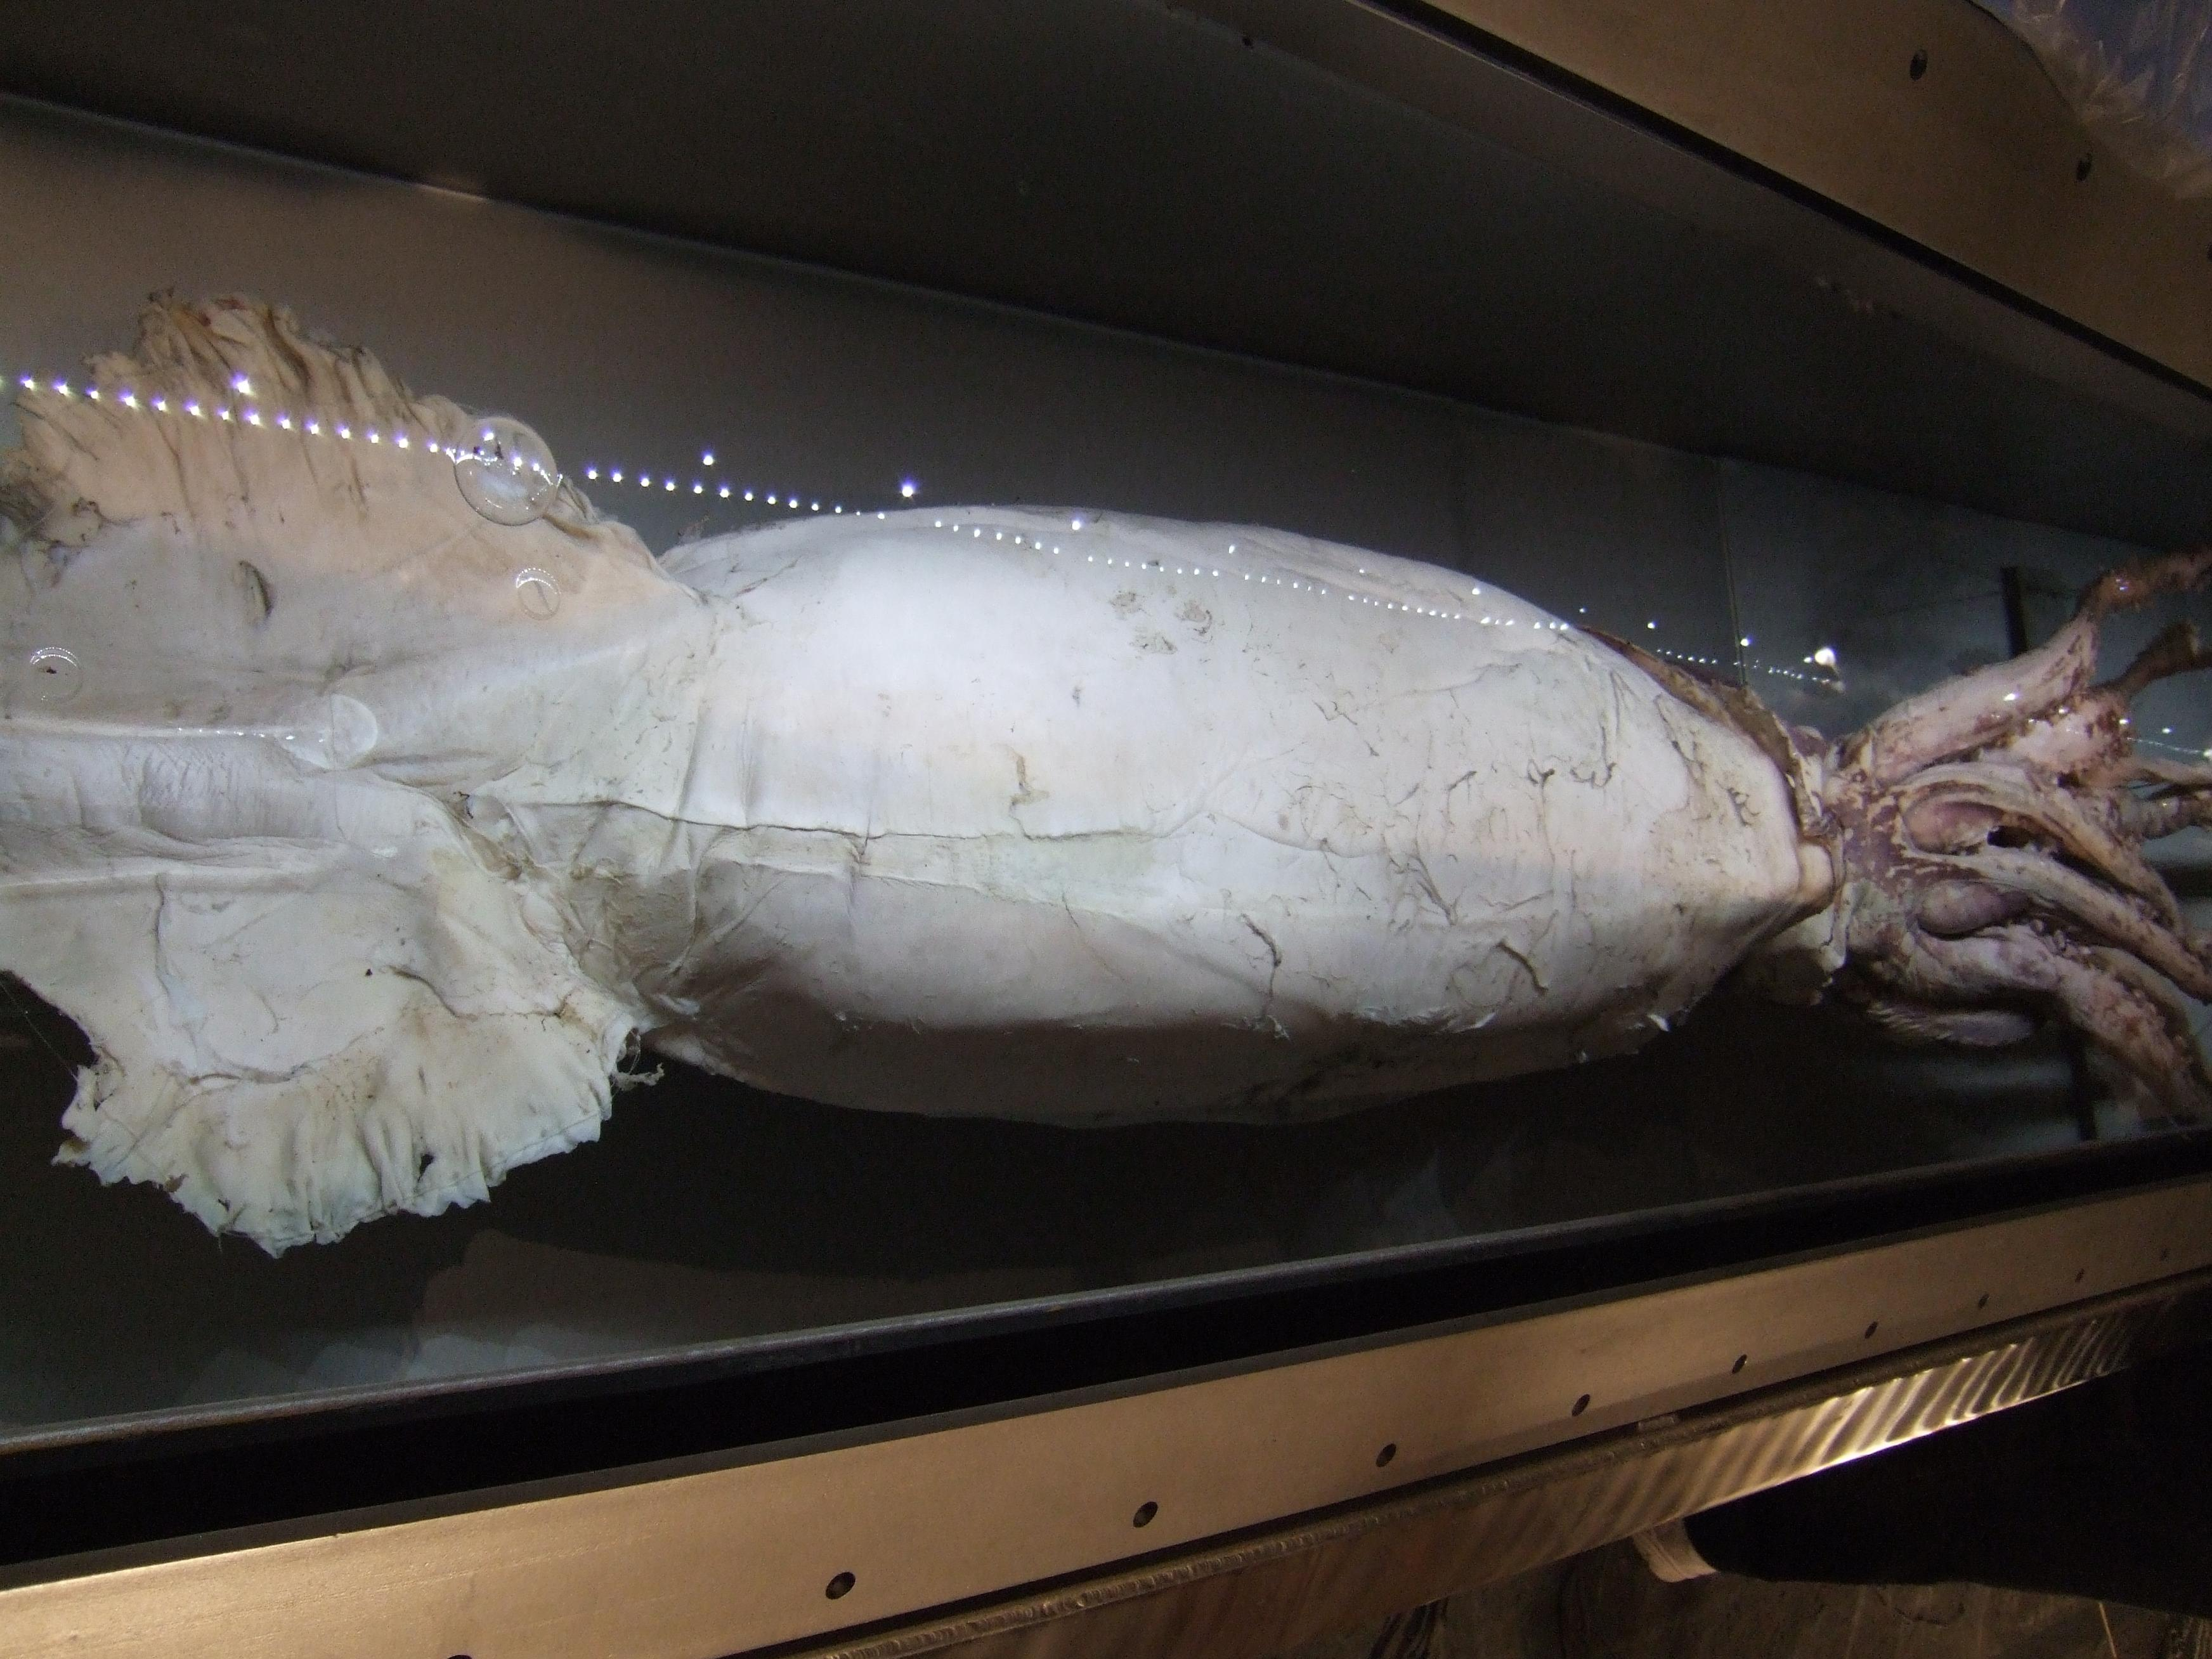 3M Novec Engineered Fluid Preserves World's Largest Squid